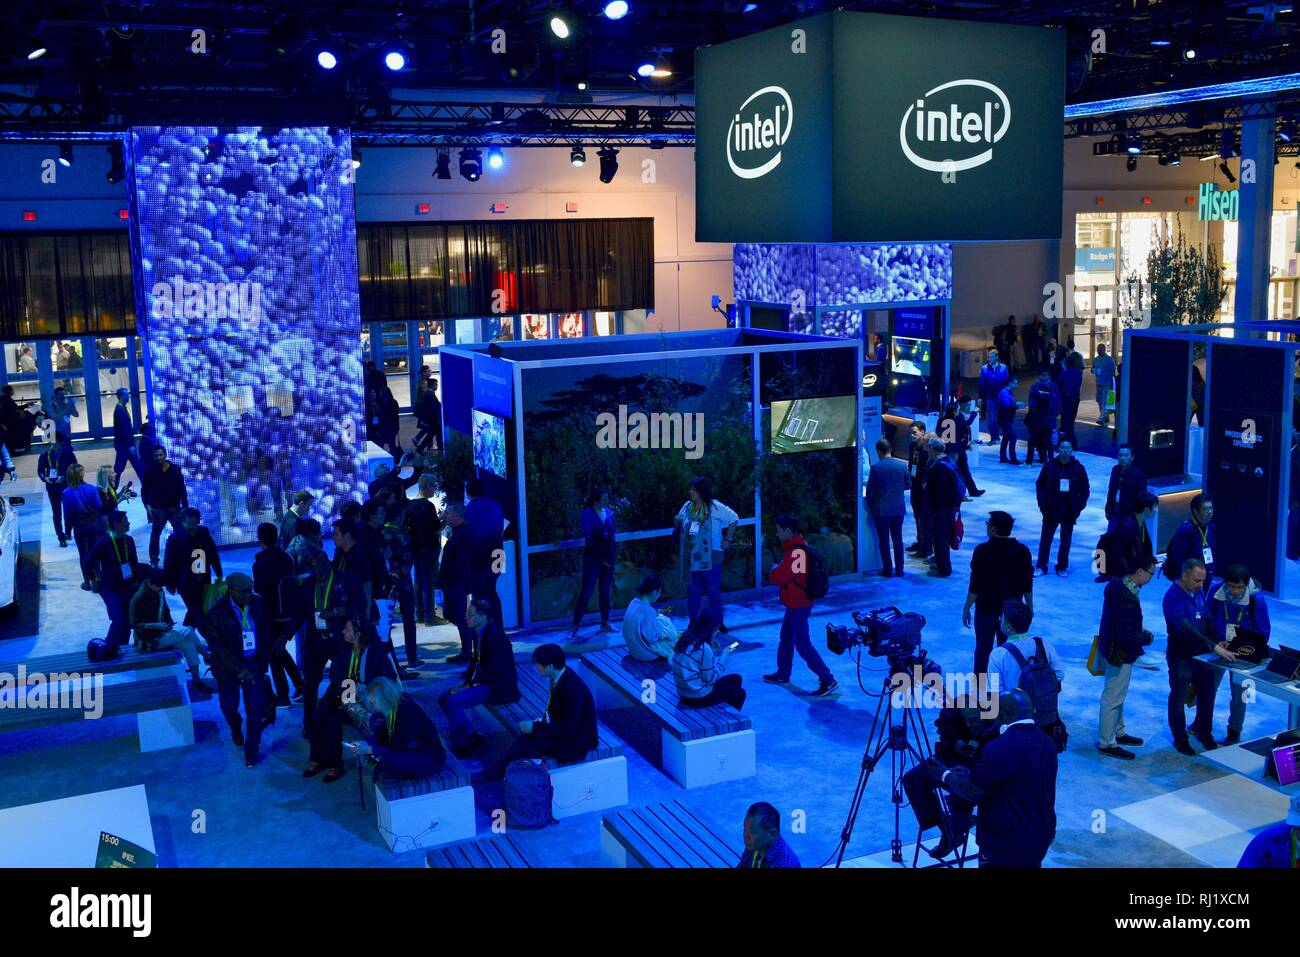 Attendees trying out demos of computers, augmented reality experience with Magic Leap One, video games, 5G at Intel booth at CES, Las Vegas, USA. Stock Photo